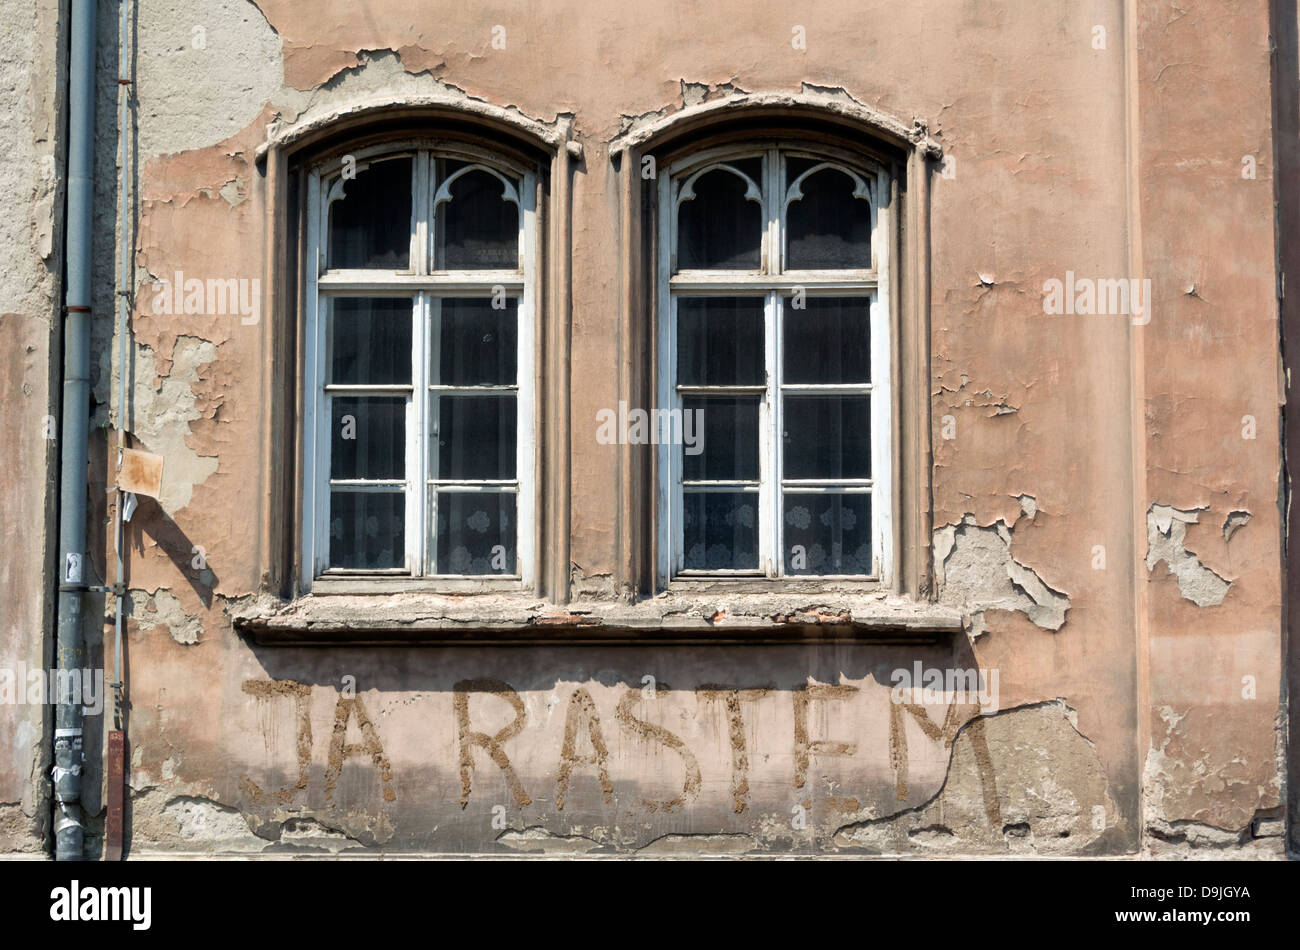 Graffiti wall zagreb - Stock Photo Urban Graffiti From Zagreb City Center Croatia Europe Croatian Message Ja Rastem I Growth